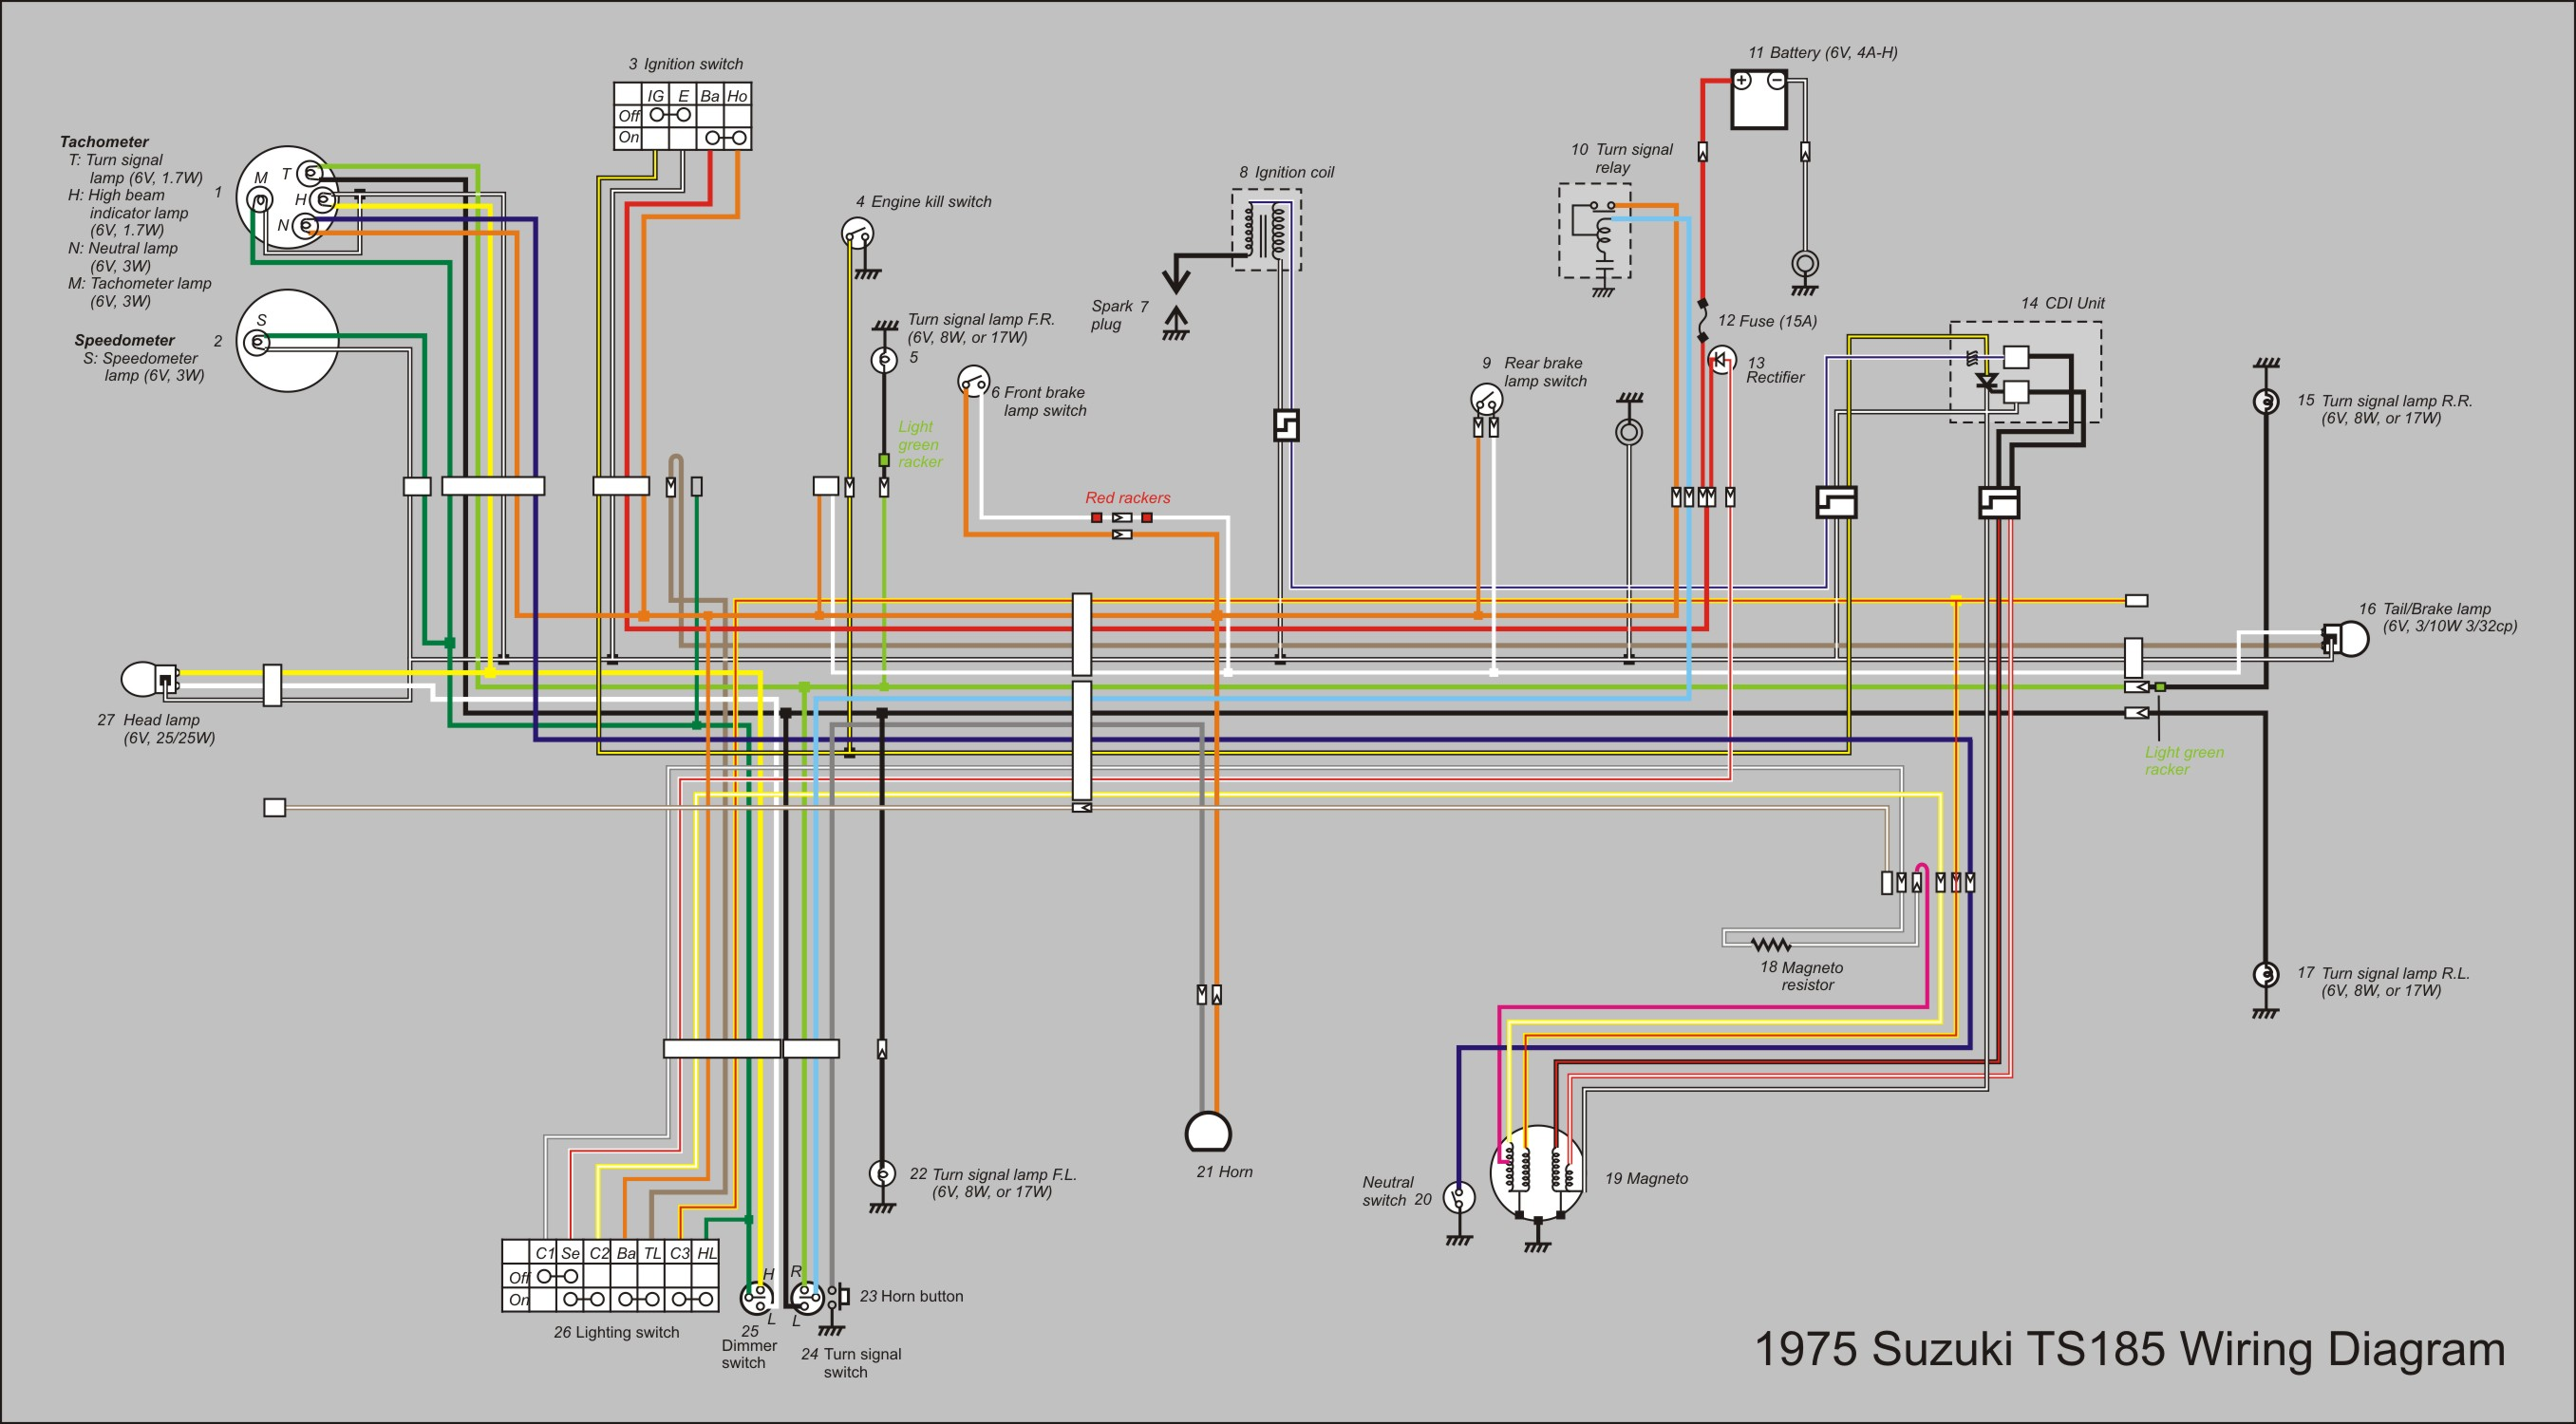 TS185_Wiring_Diagram_new file ts185 wiring diagram new jpg wikimedia commons klr 250 wiring diagram at virtualis.co